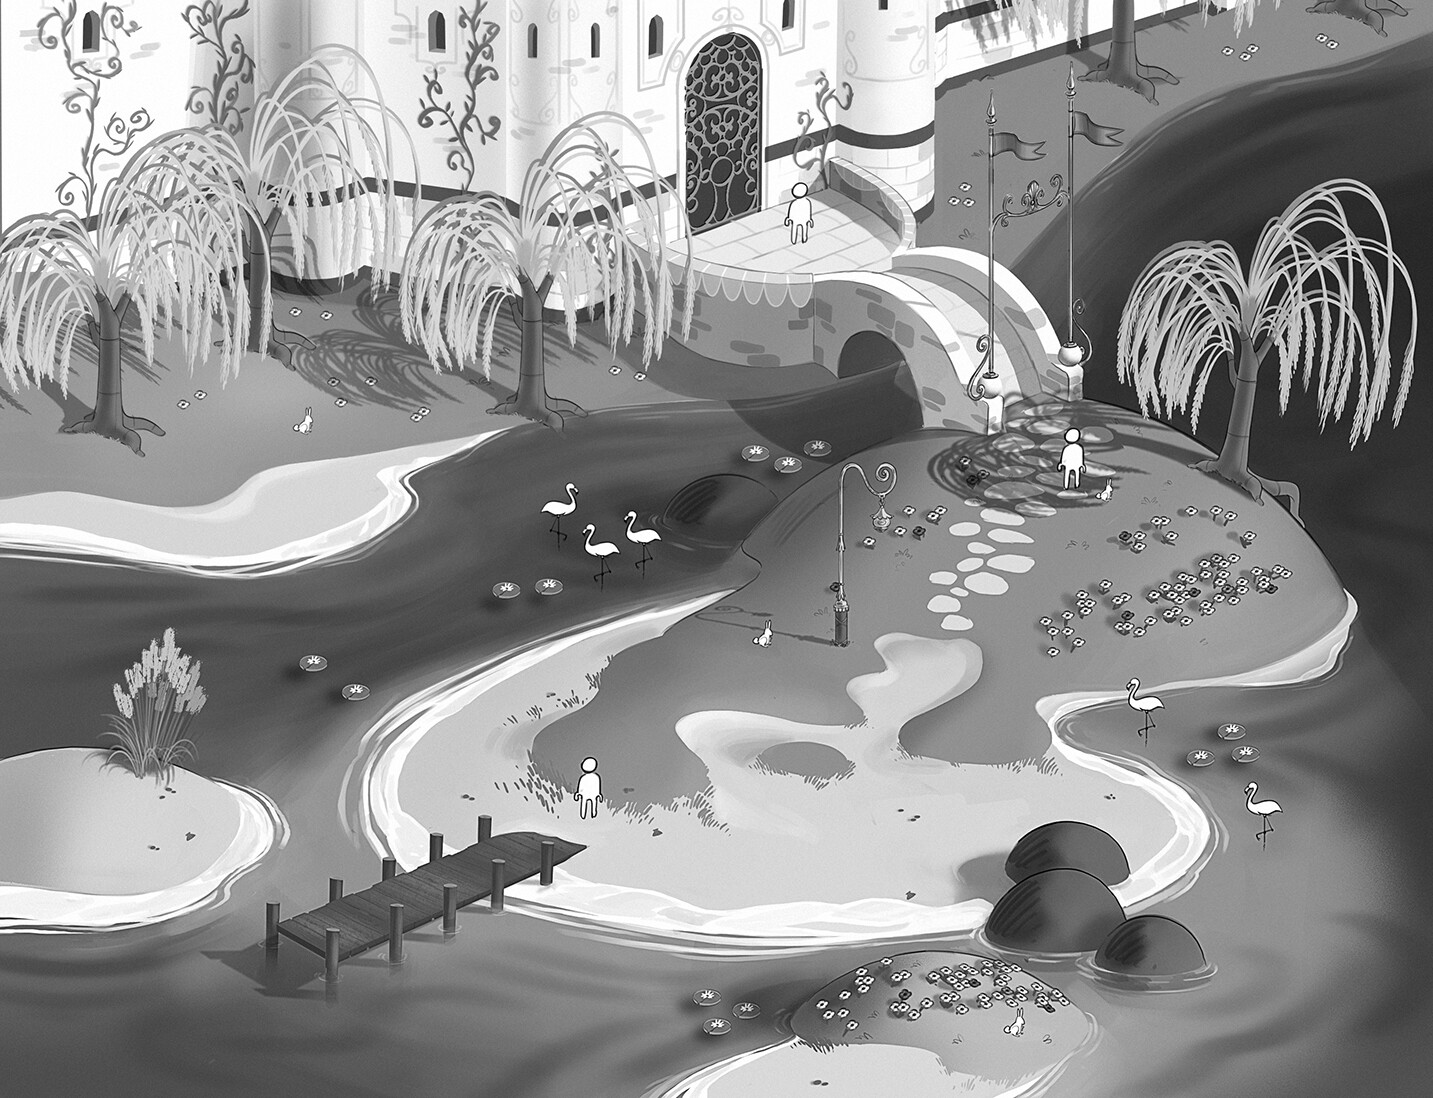 Fairytale concept based on an early stage of the script.